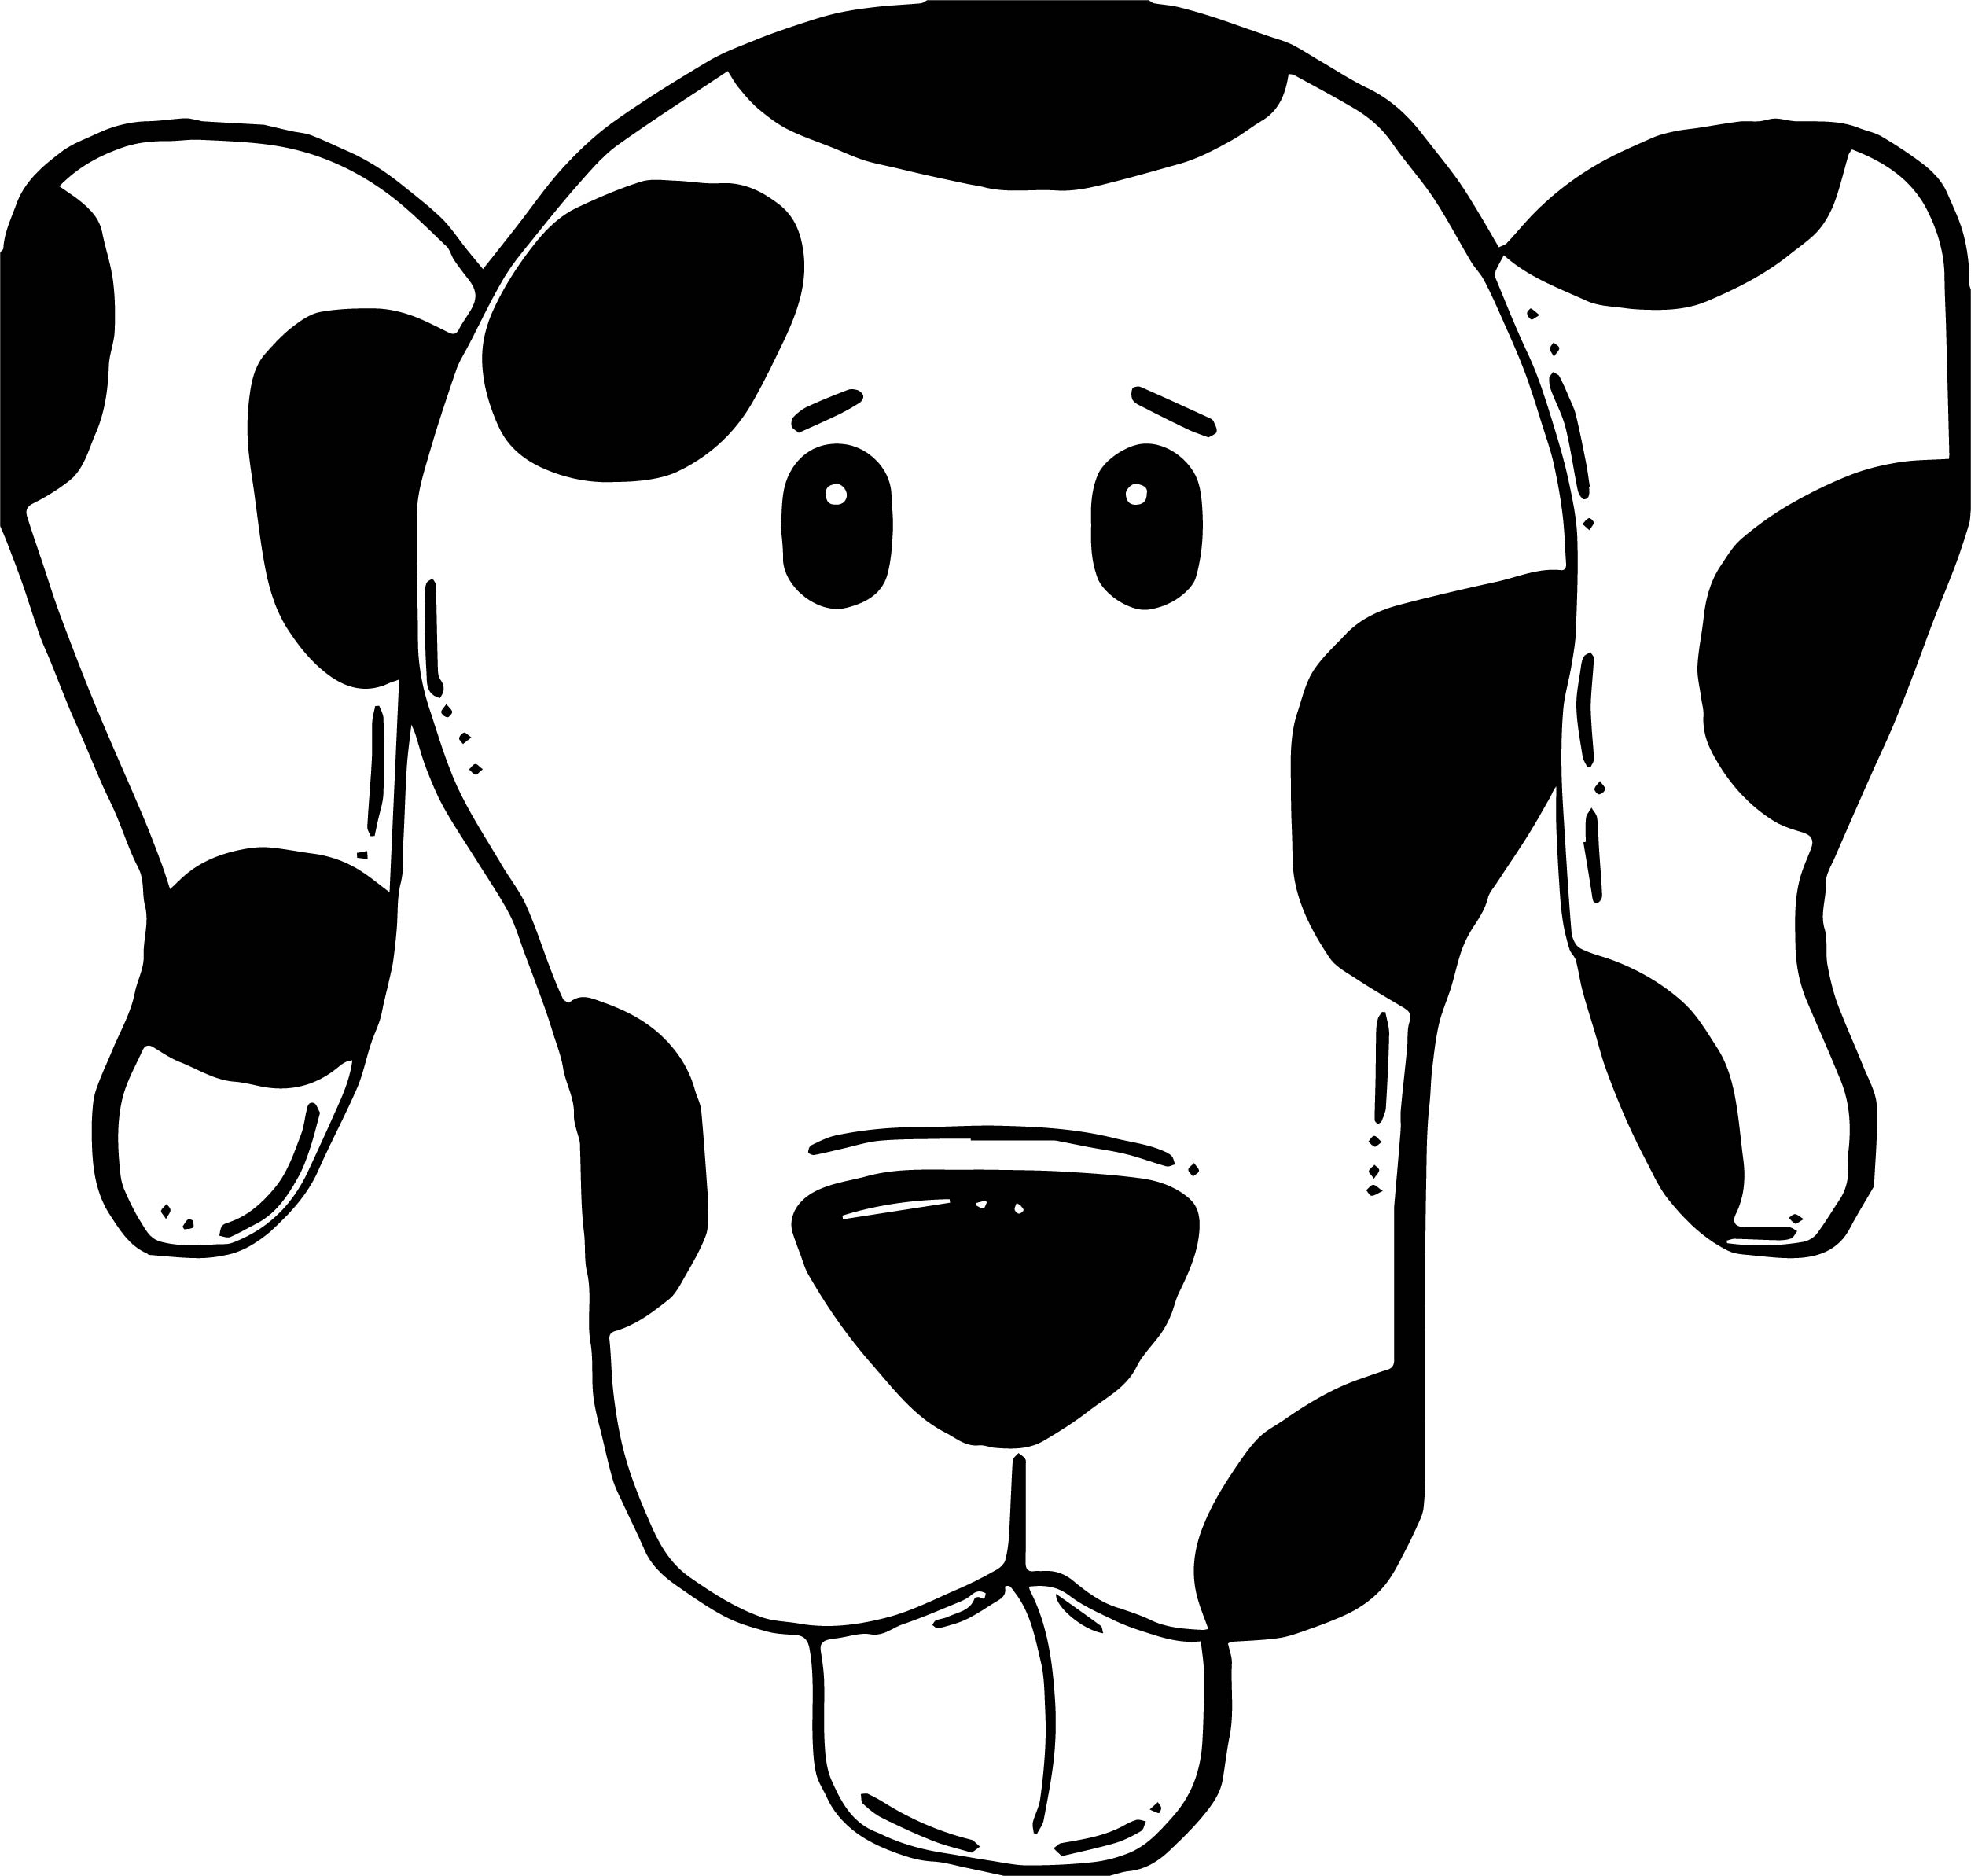 Puppy Dog Face Panda Style Free Images Dog Puppy Coloring Page